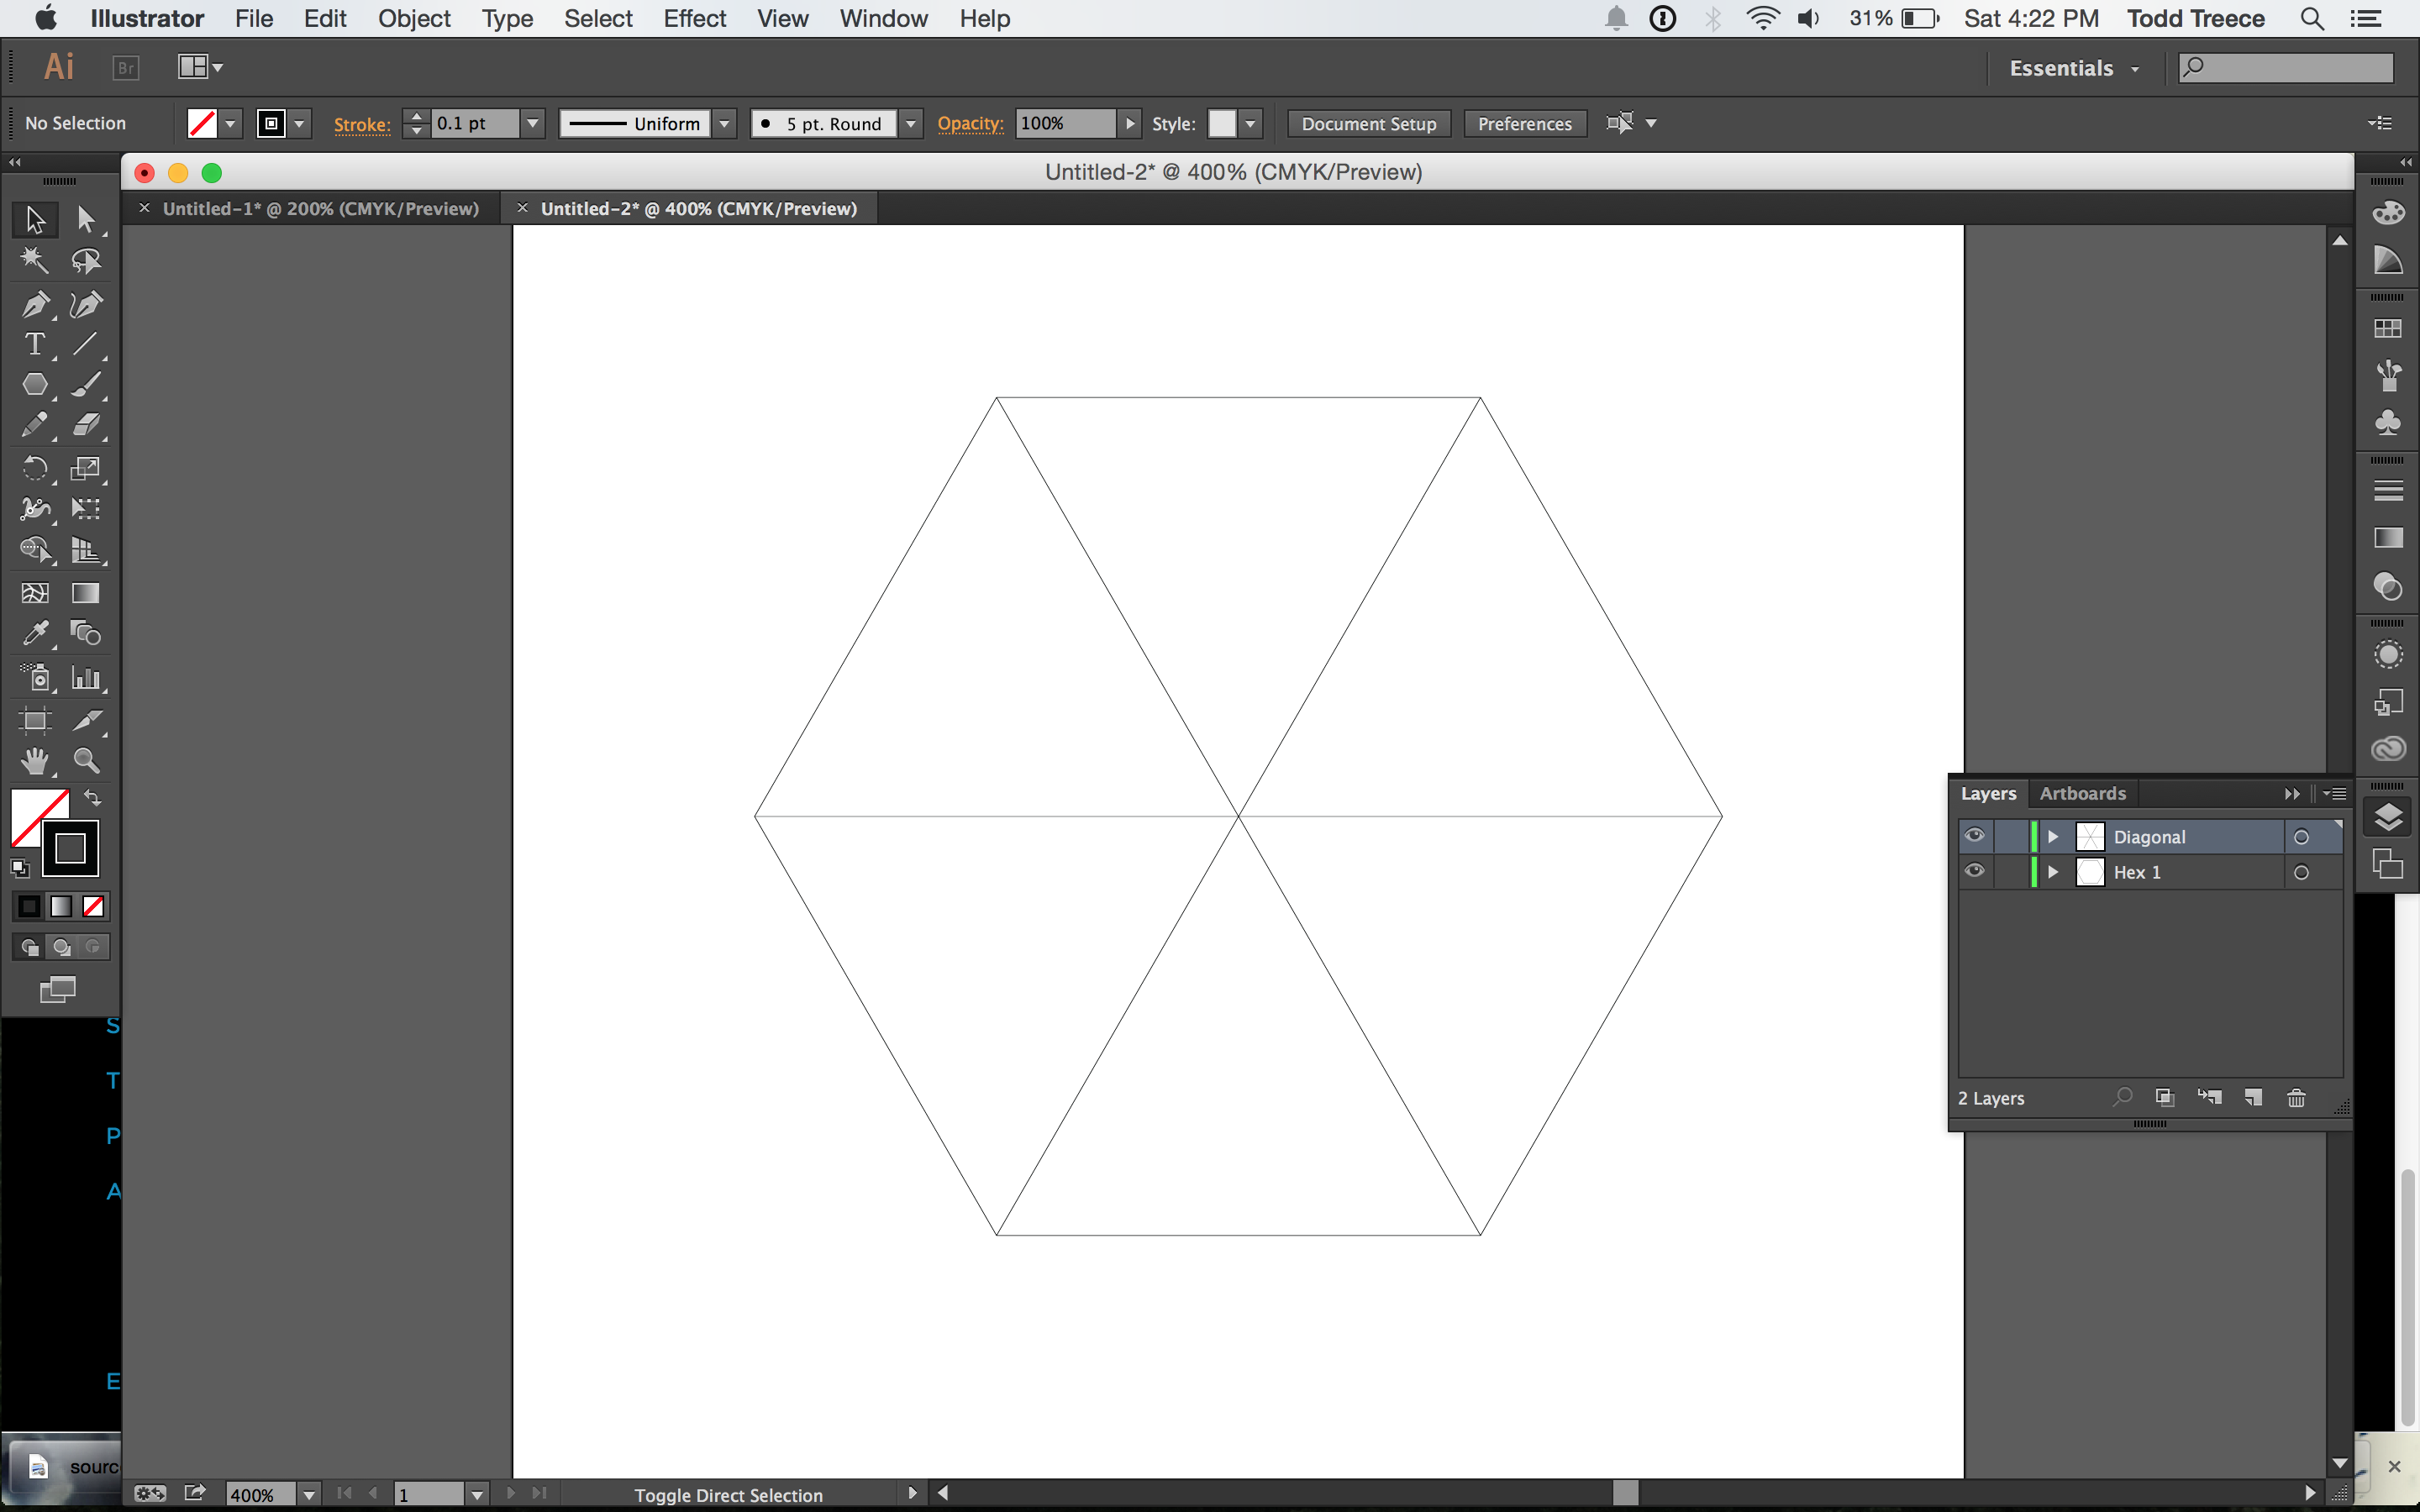 projects_Screen_Shot_2015-03-14_at_4.22.22_PM.png